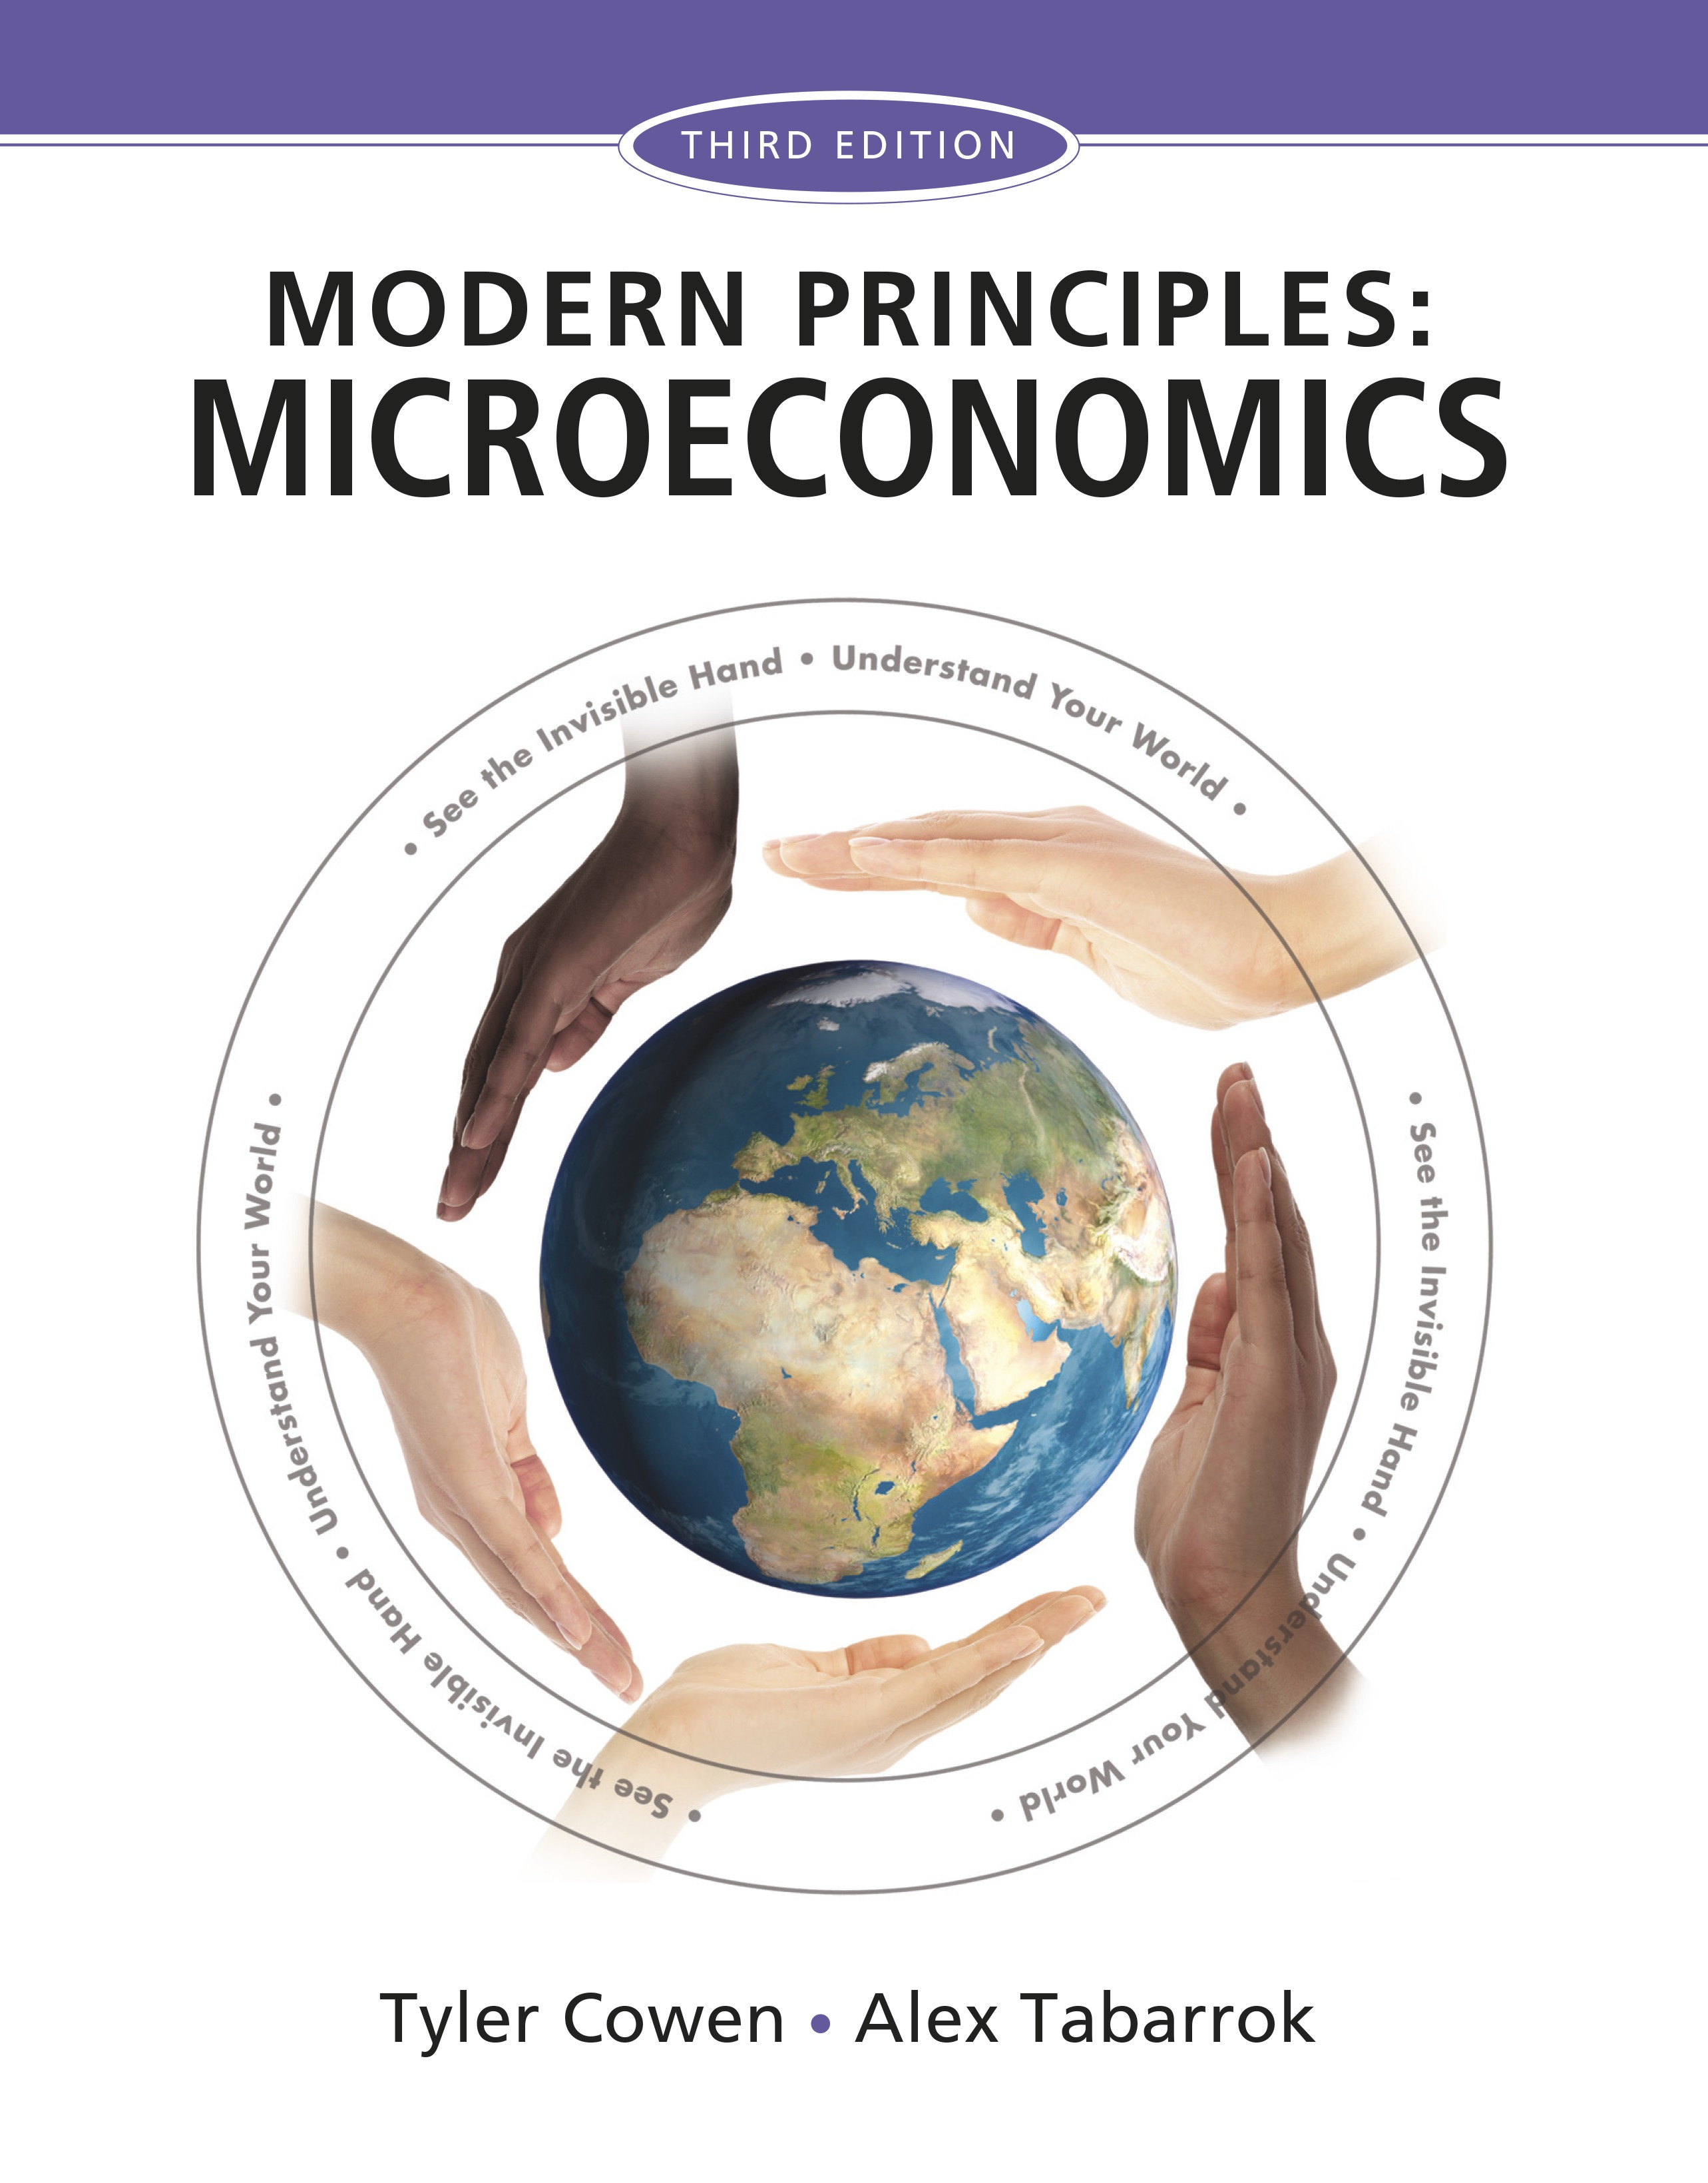 fundamentals of microeconomics Publisher summary this chapter reviews the fundamental concepts of  microeconomics microeconomics analyzes interactions between economic  agents in.